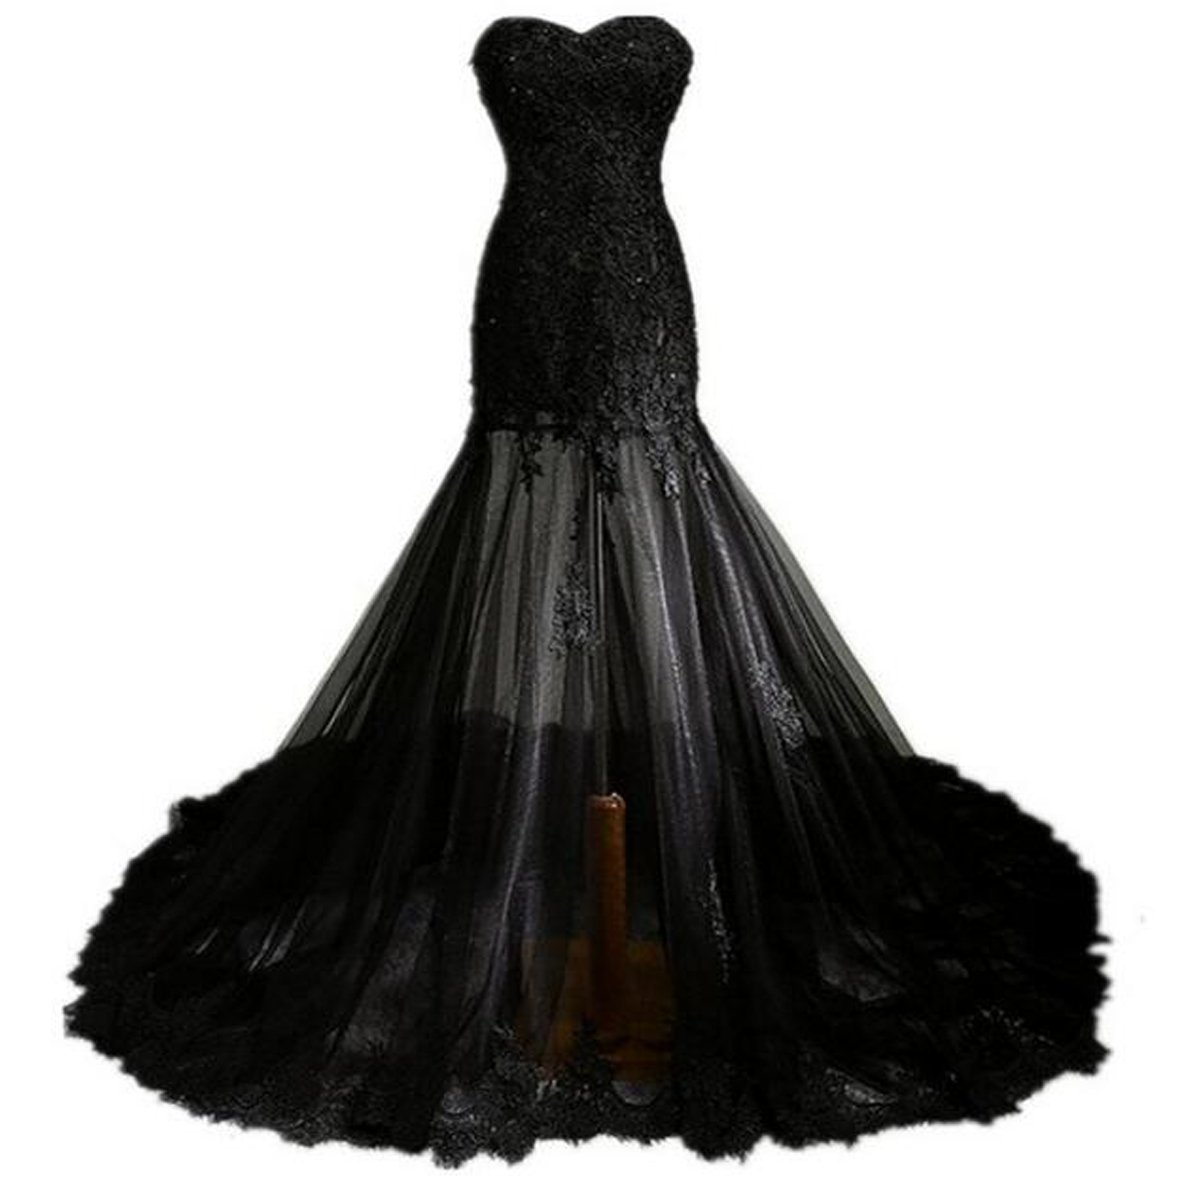 Fair Lady Gothic Vintage Mermaid Prom Dress Long Beaded Lace Black Wedding Party Gown At Amazon Women's Clothing Store: Vintage Black Wedding Dress At Websimilar.org